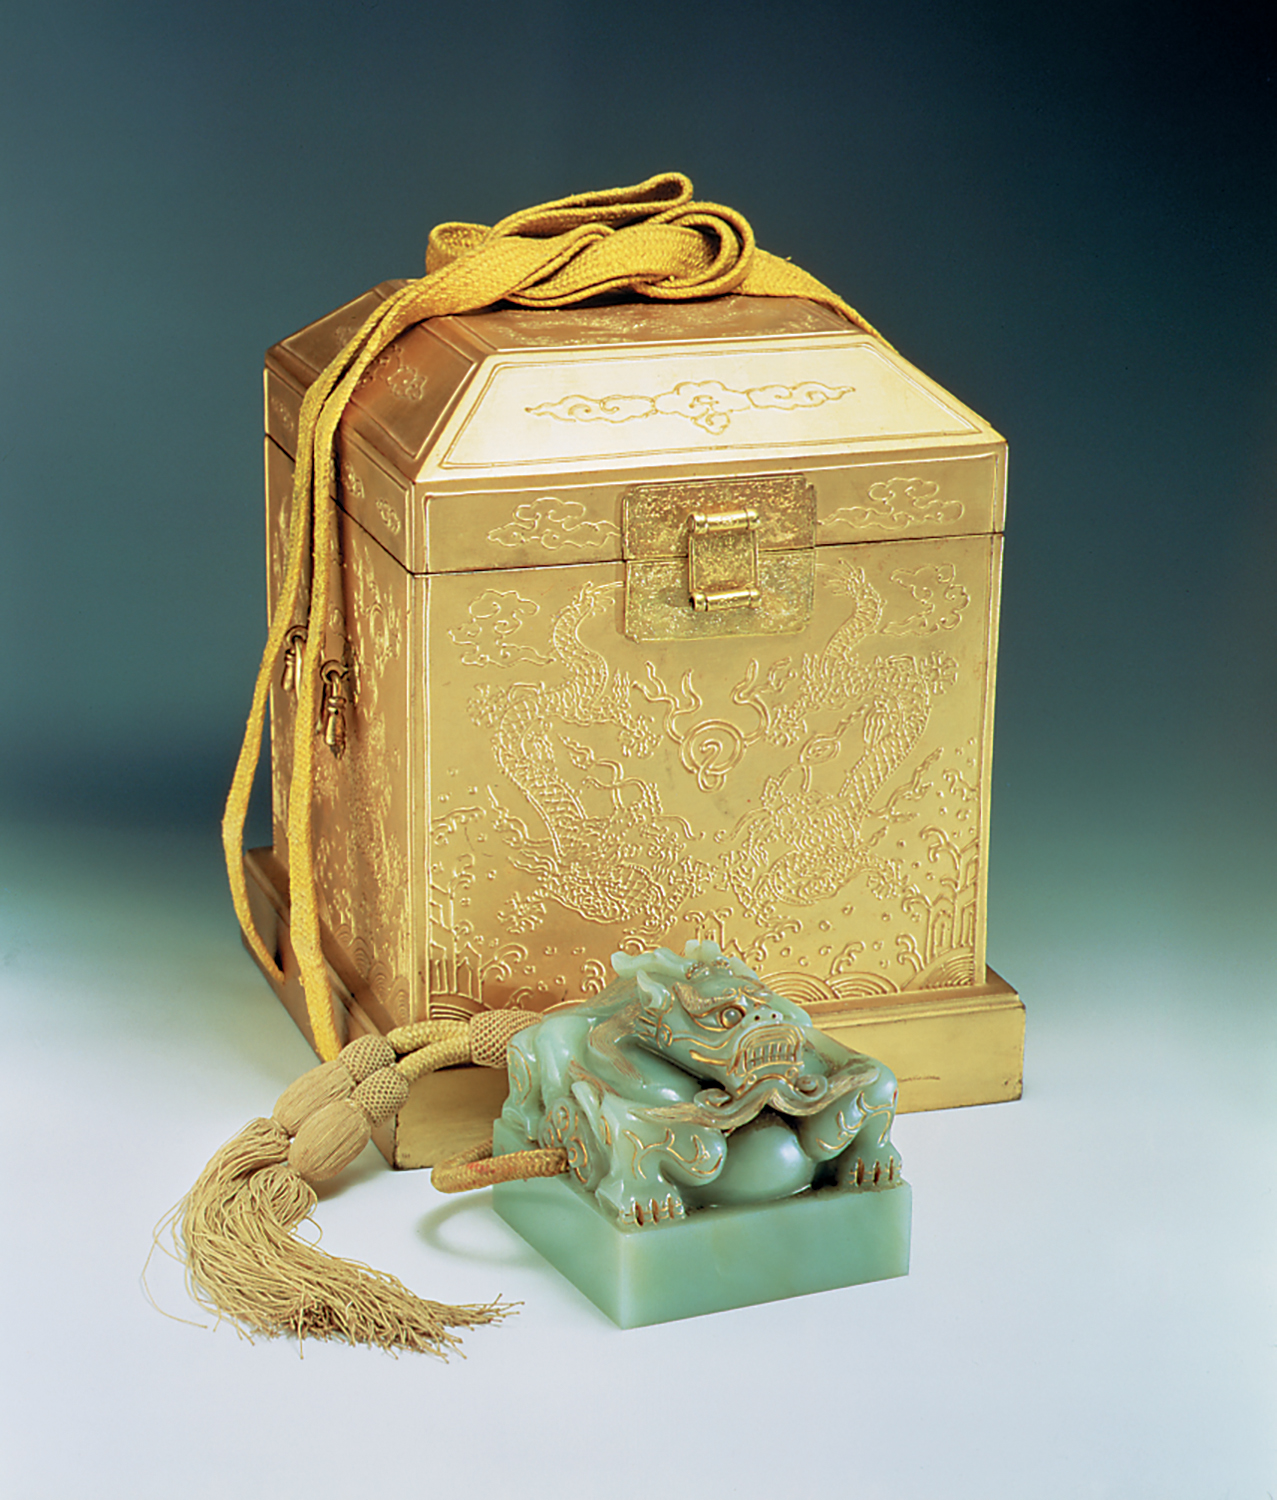 A jade seal with a dragon design and its ornamental case with drawings embossed on it.